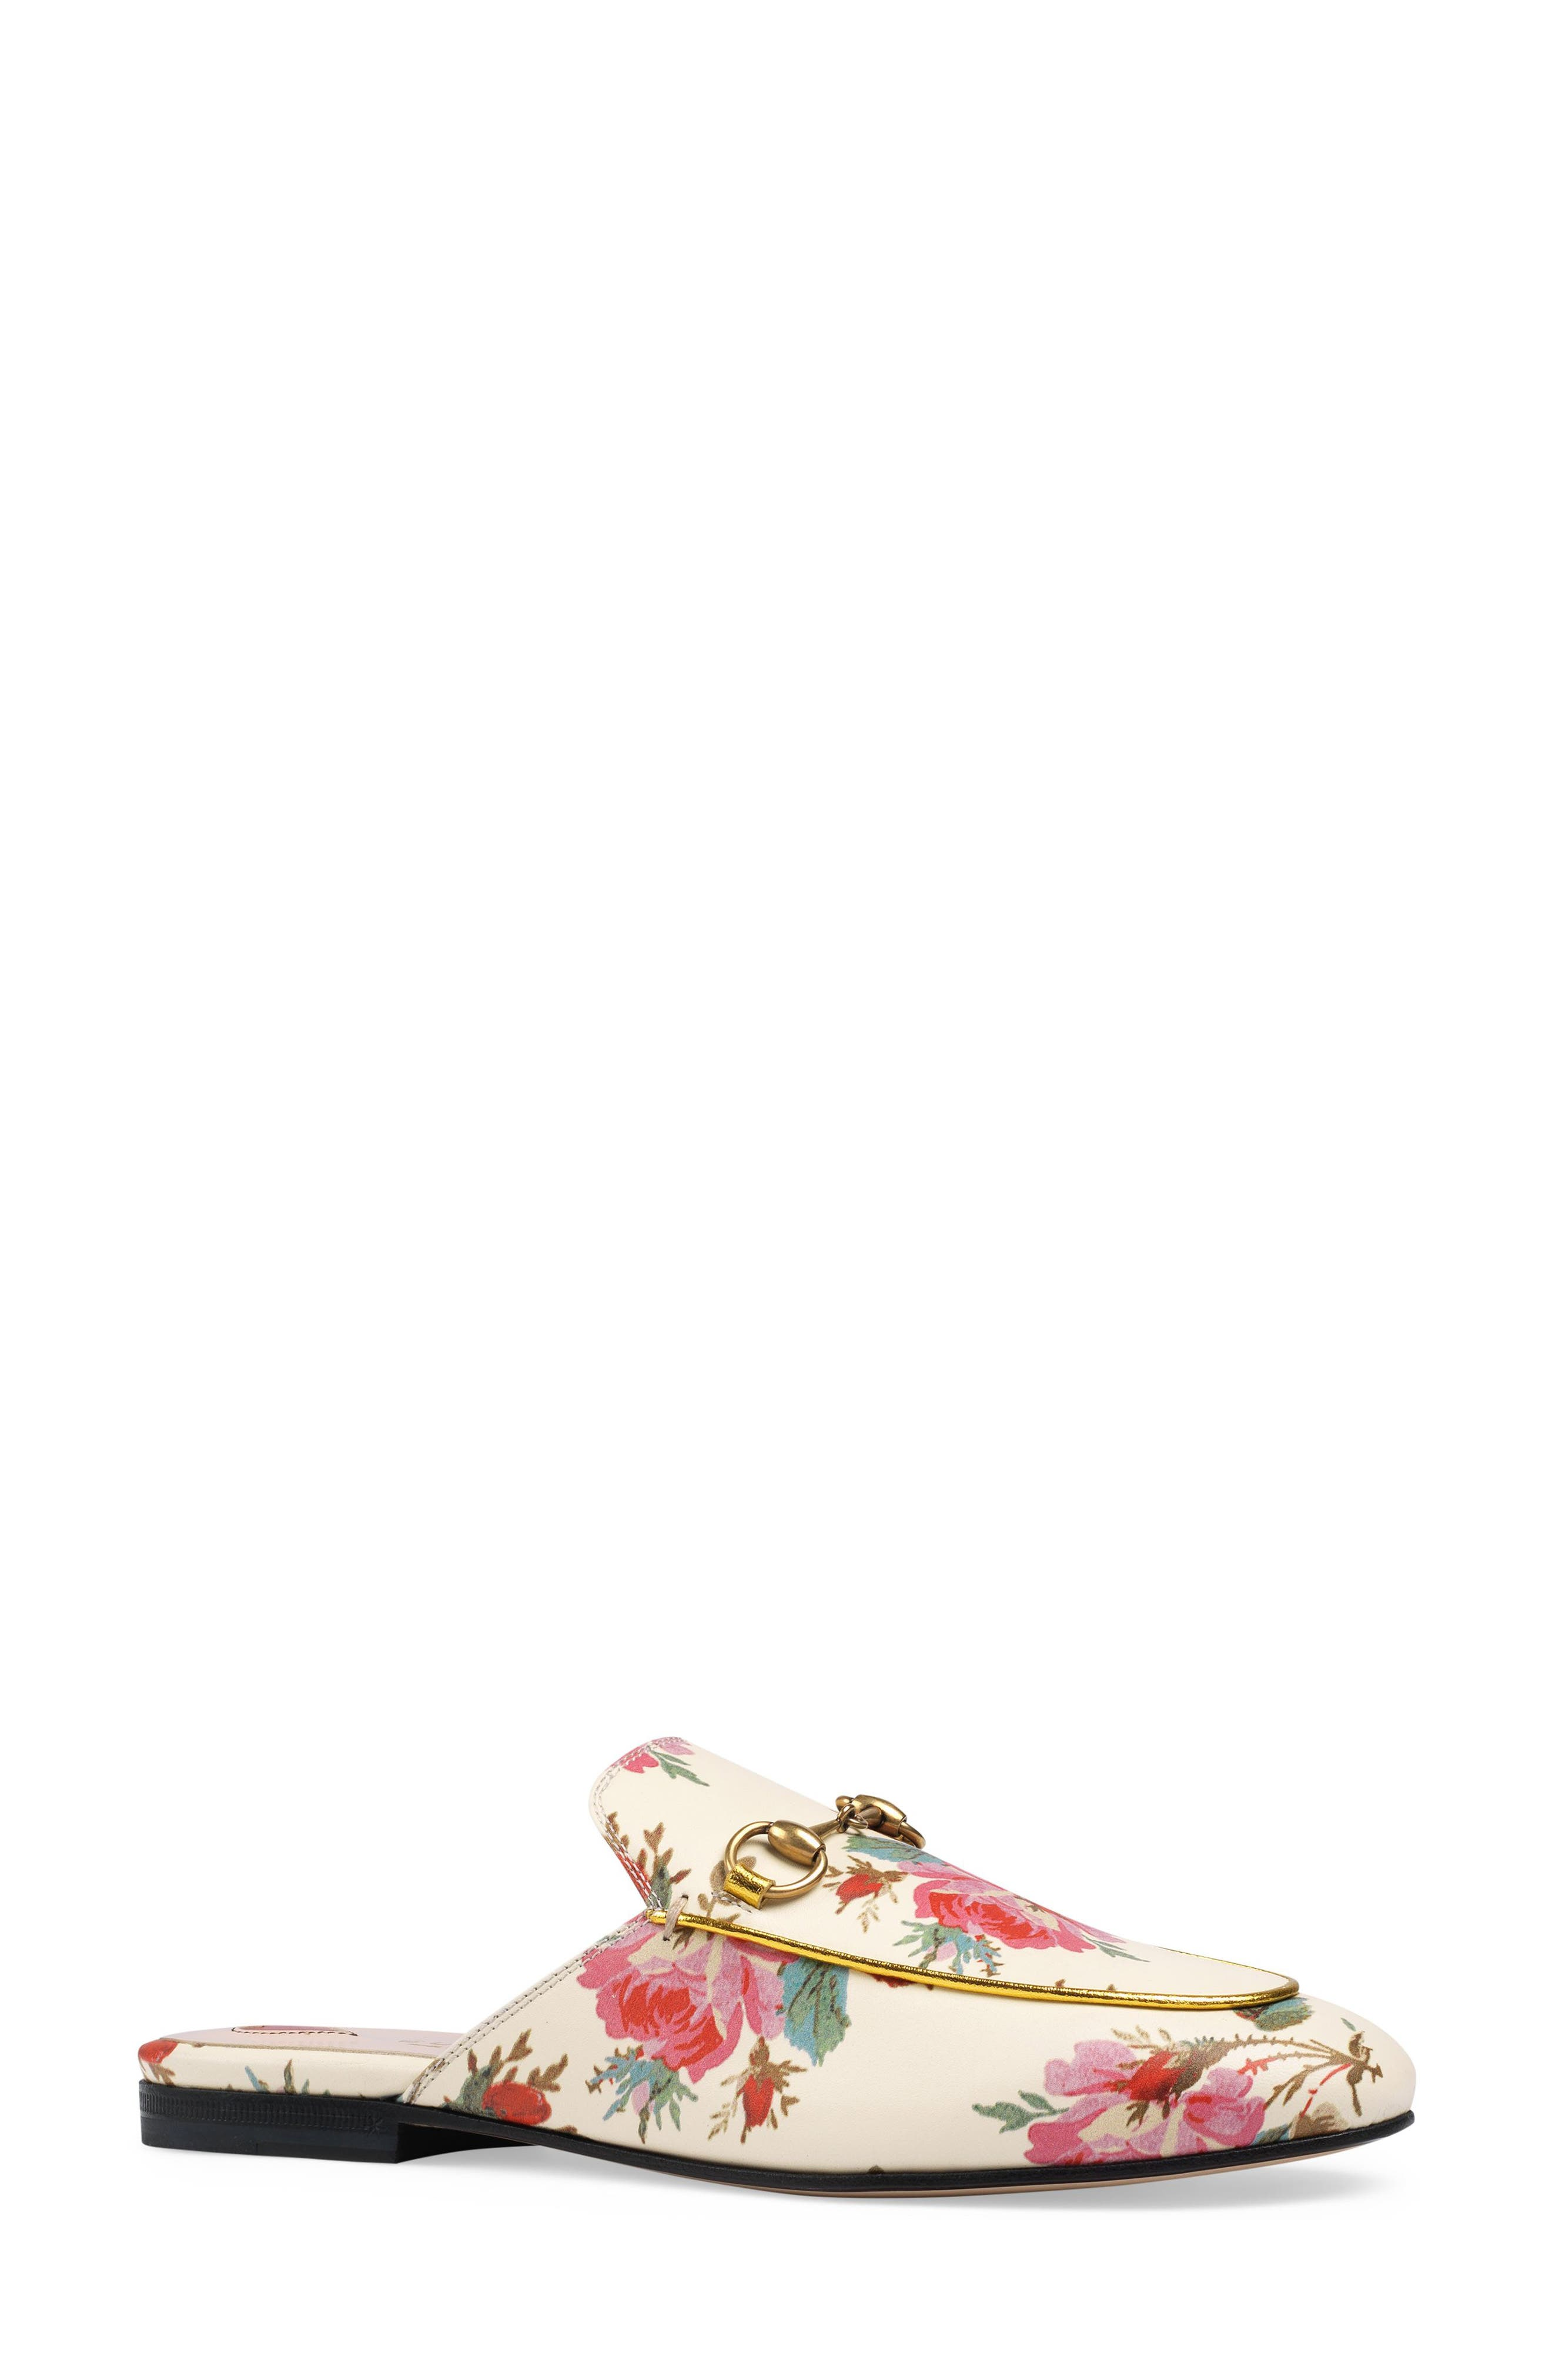 Princetown Floral Loafer Mule,                             Main thumbnail 1, color,                             900